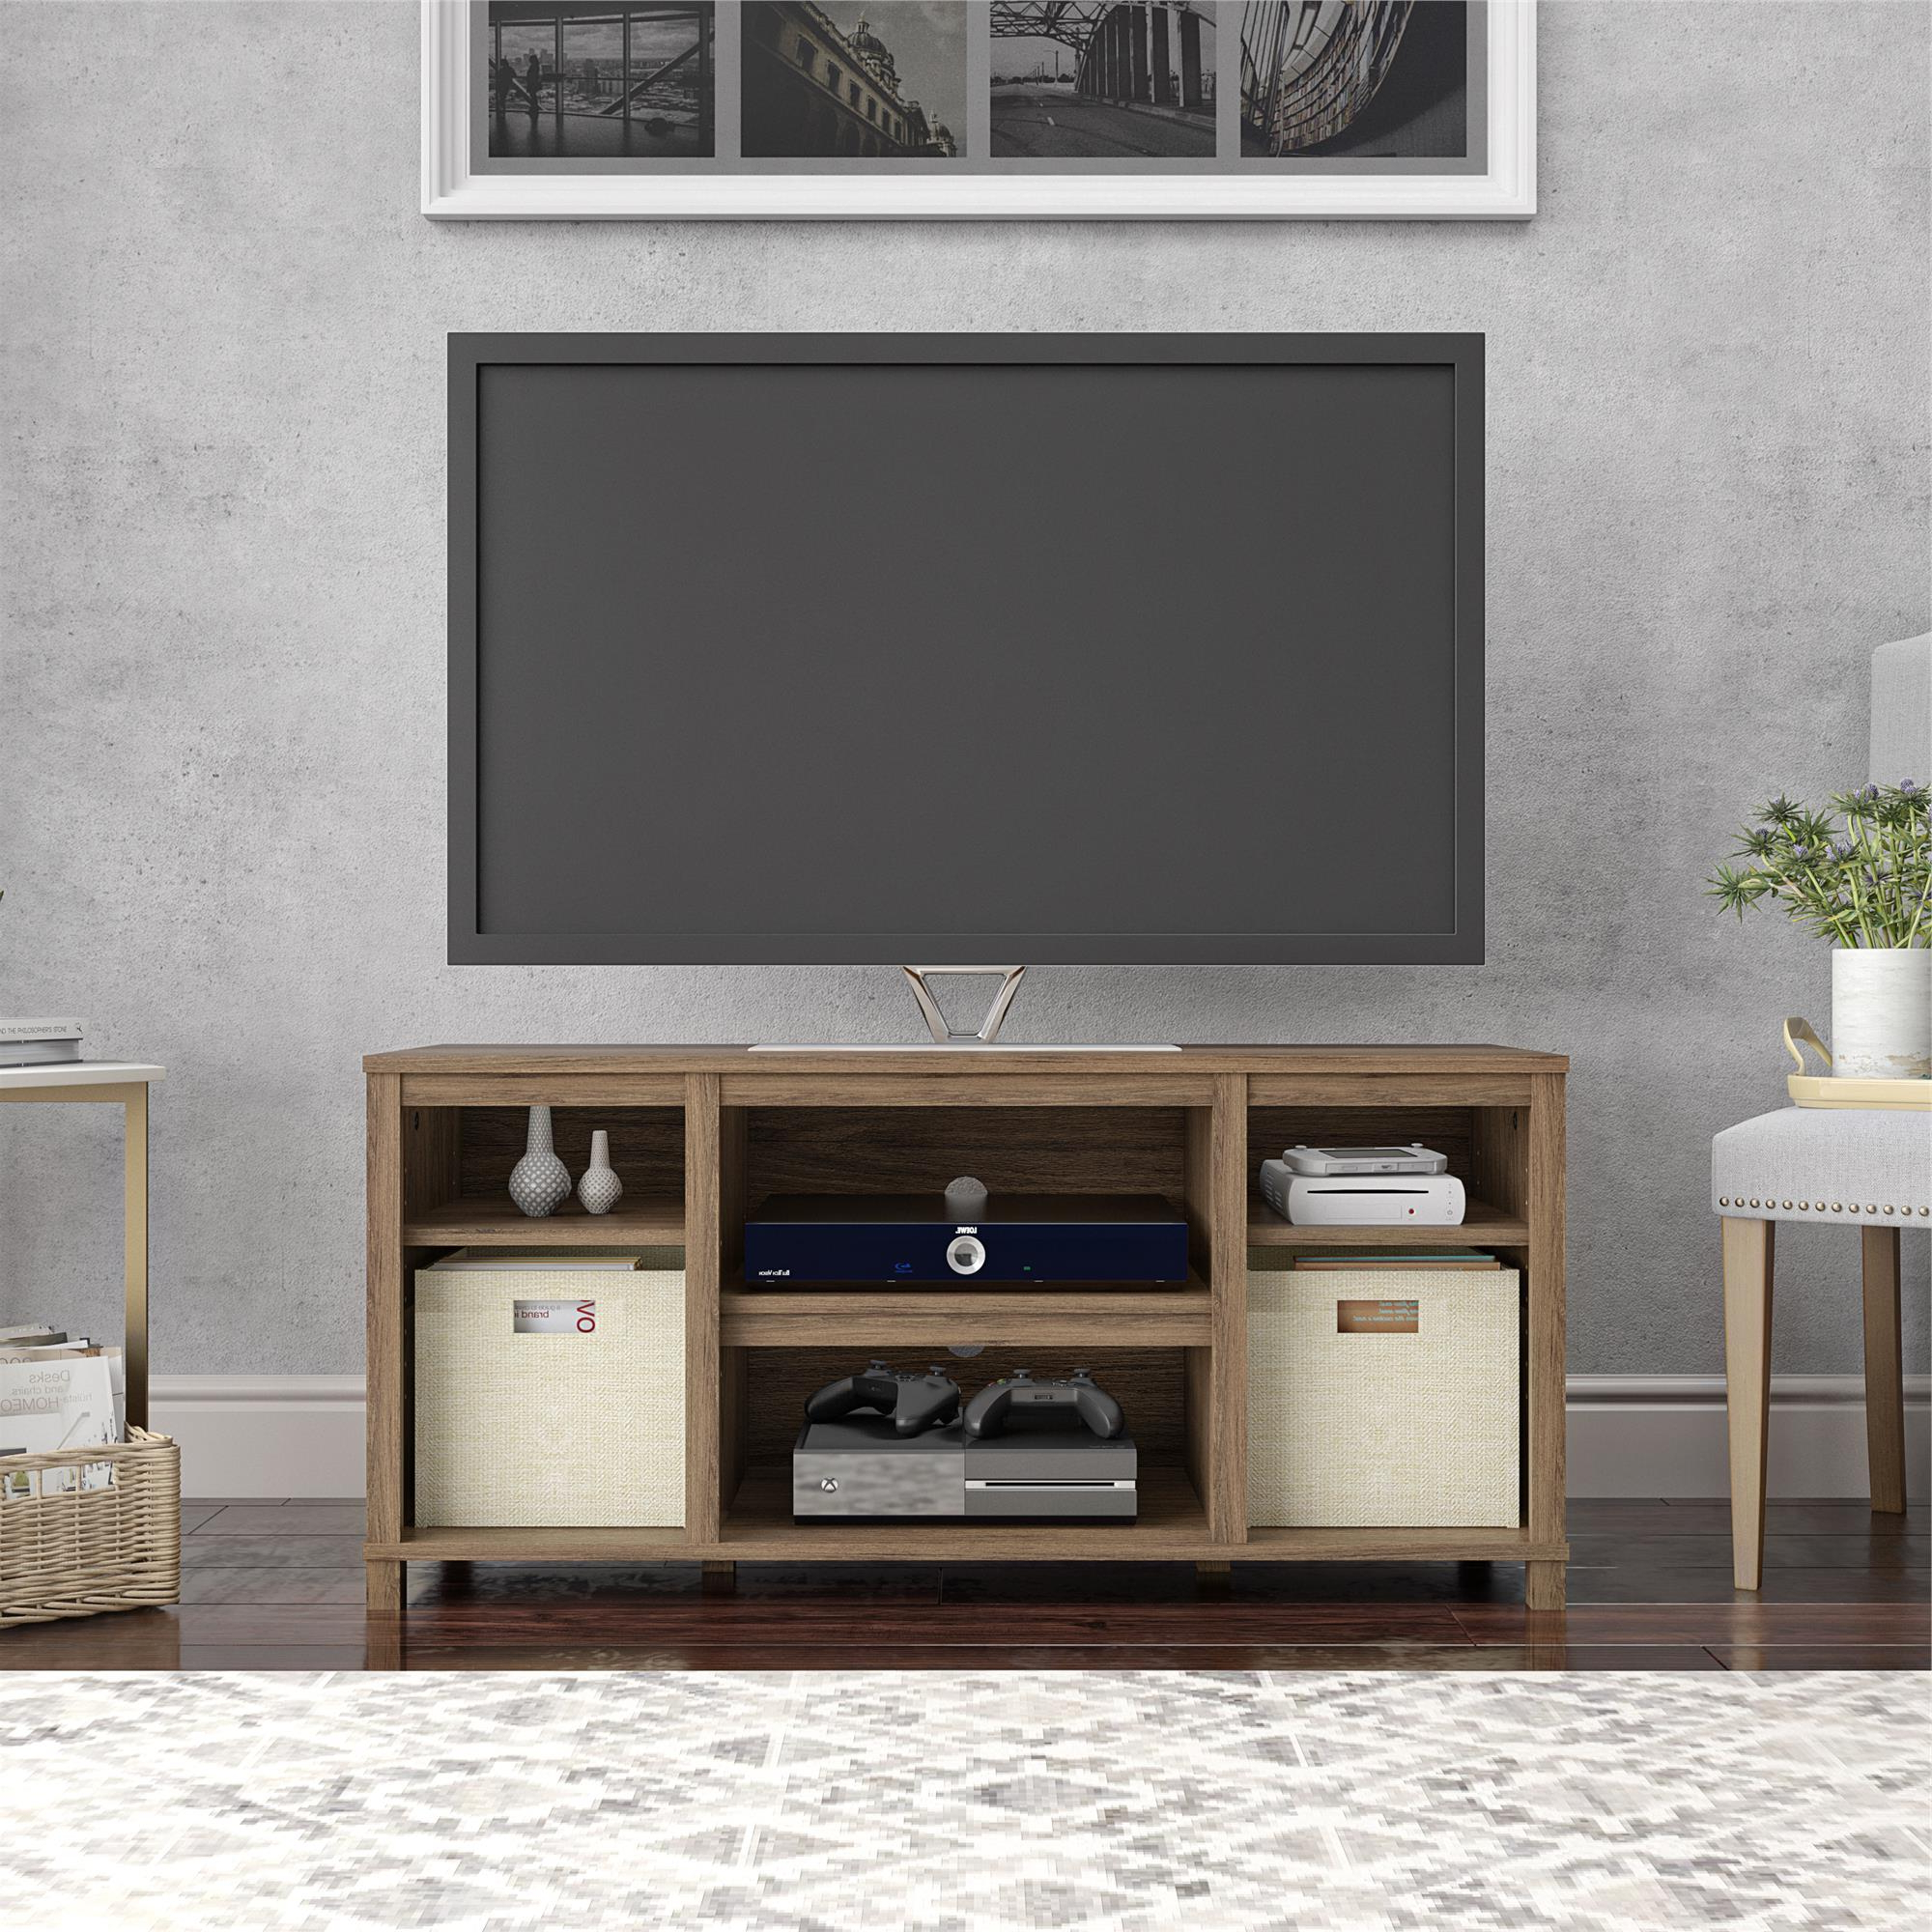 """Favorite Mainstays Parsons Cubby Tv Stand For Tvs Up To 50"""", Rustic Within Tracy Tv Stands For Tvs Up To 50"""" (View 1 of 25)"""